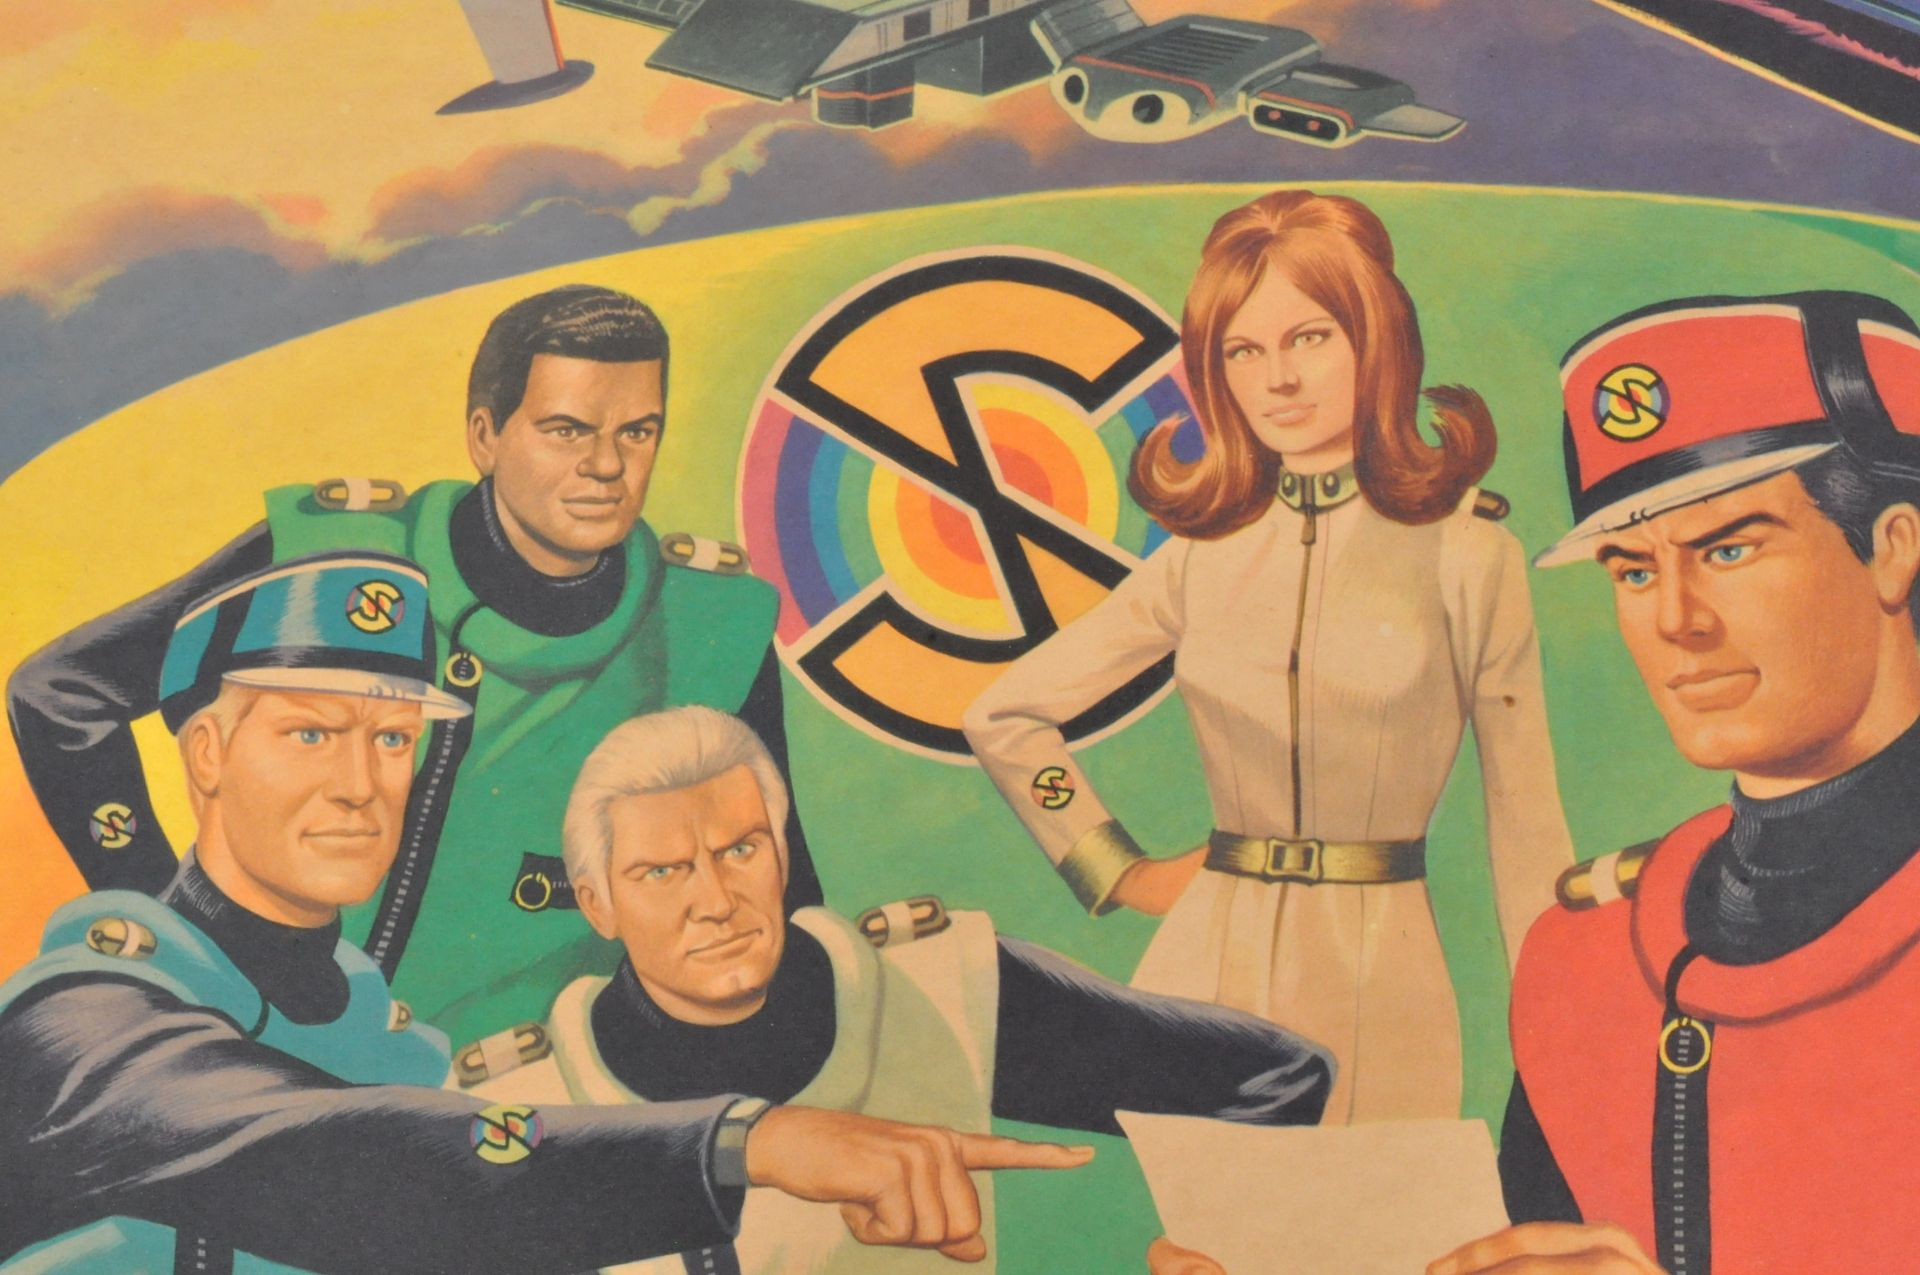 RARE CAPTAIN SCARLET ANGLO CONFECTIONERY SHOP DISPLAY POSTER BOARD - Image 5 of 9